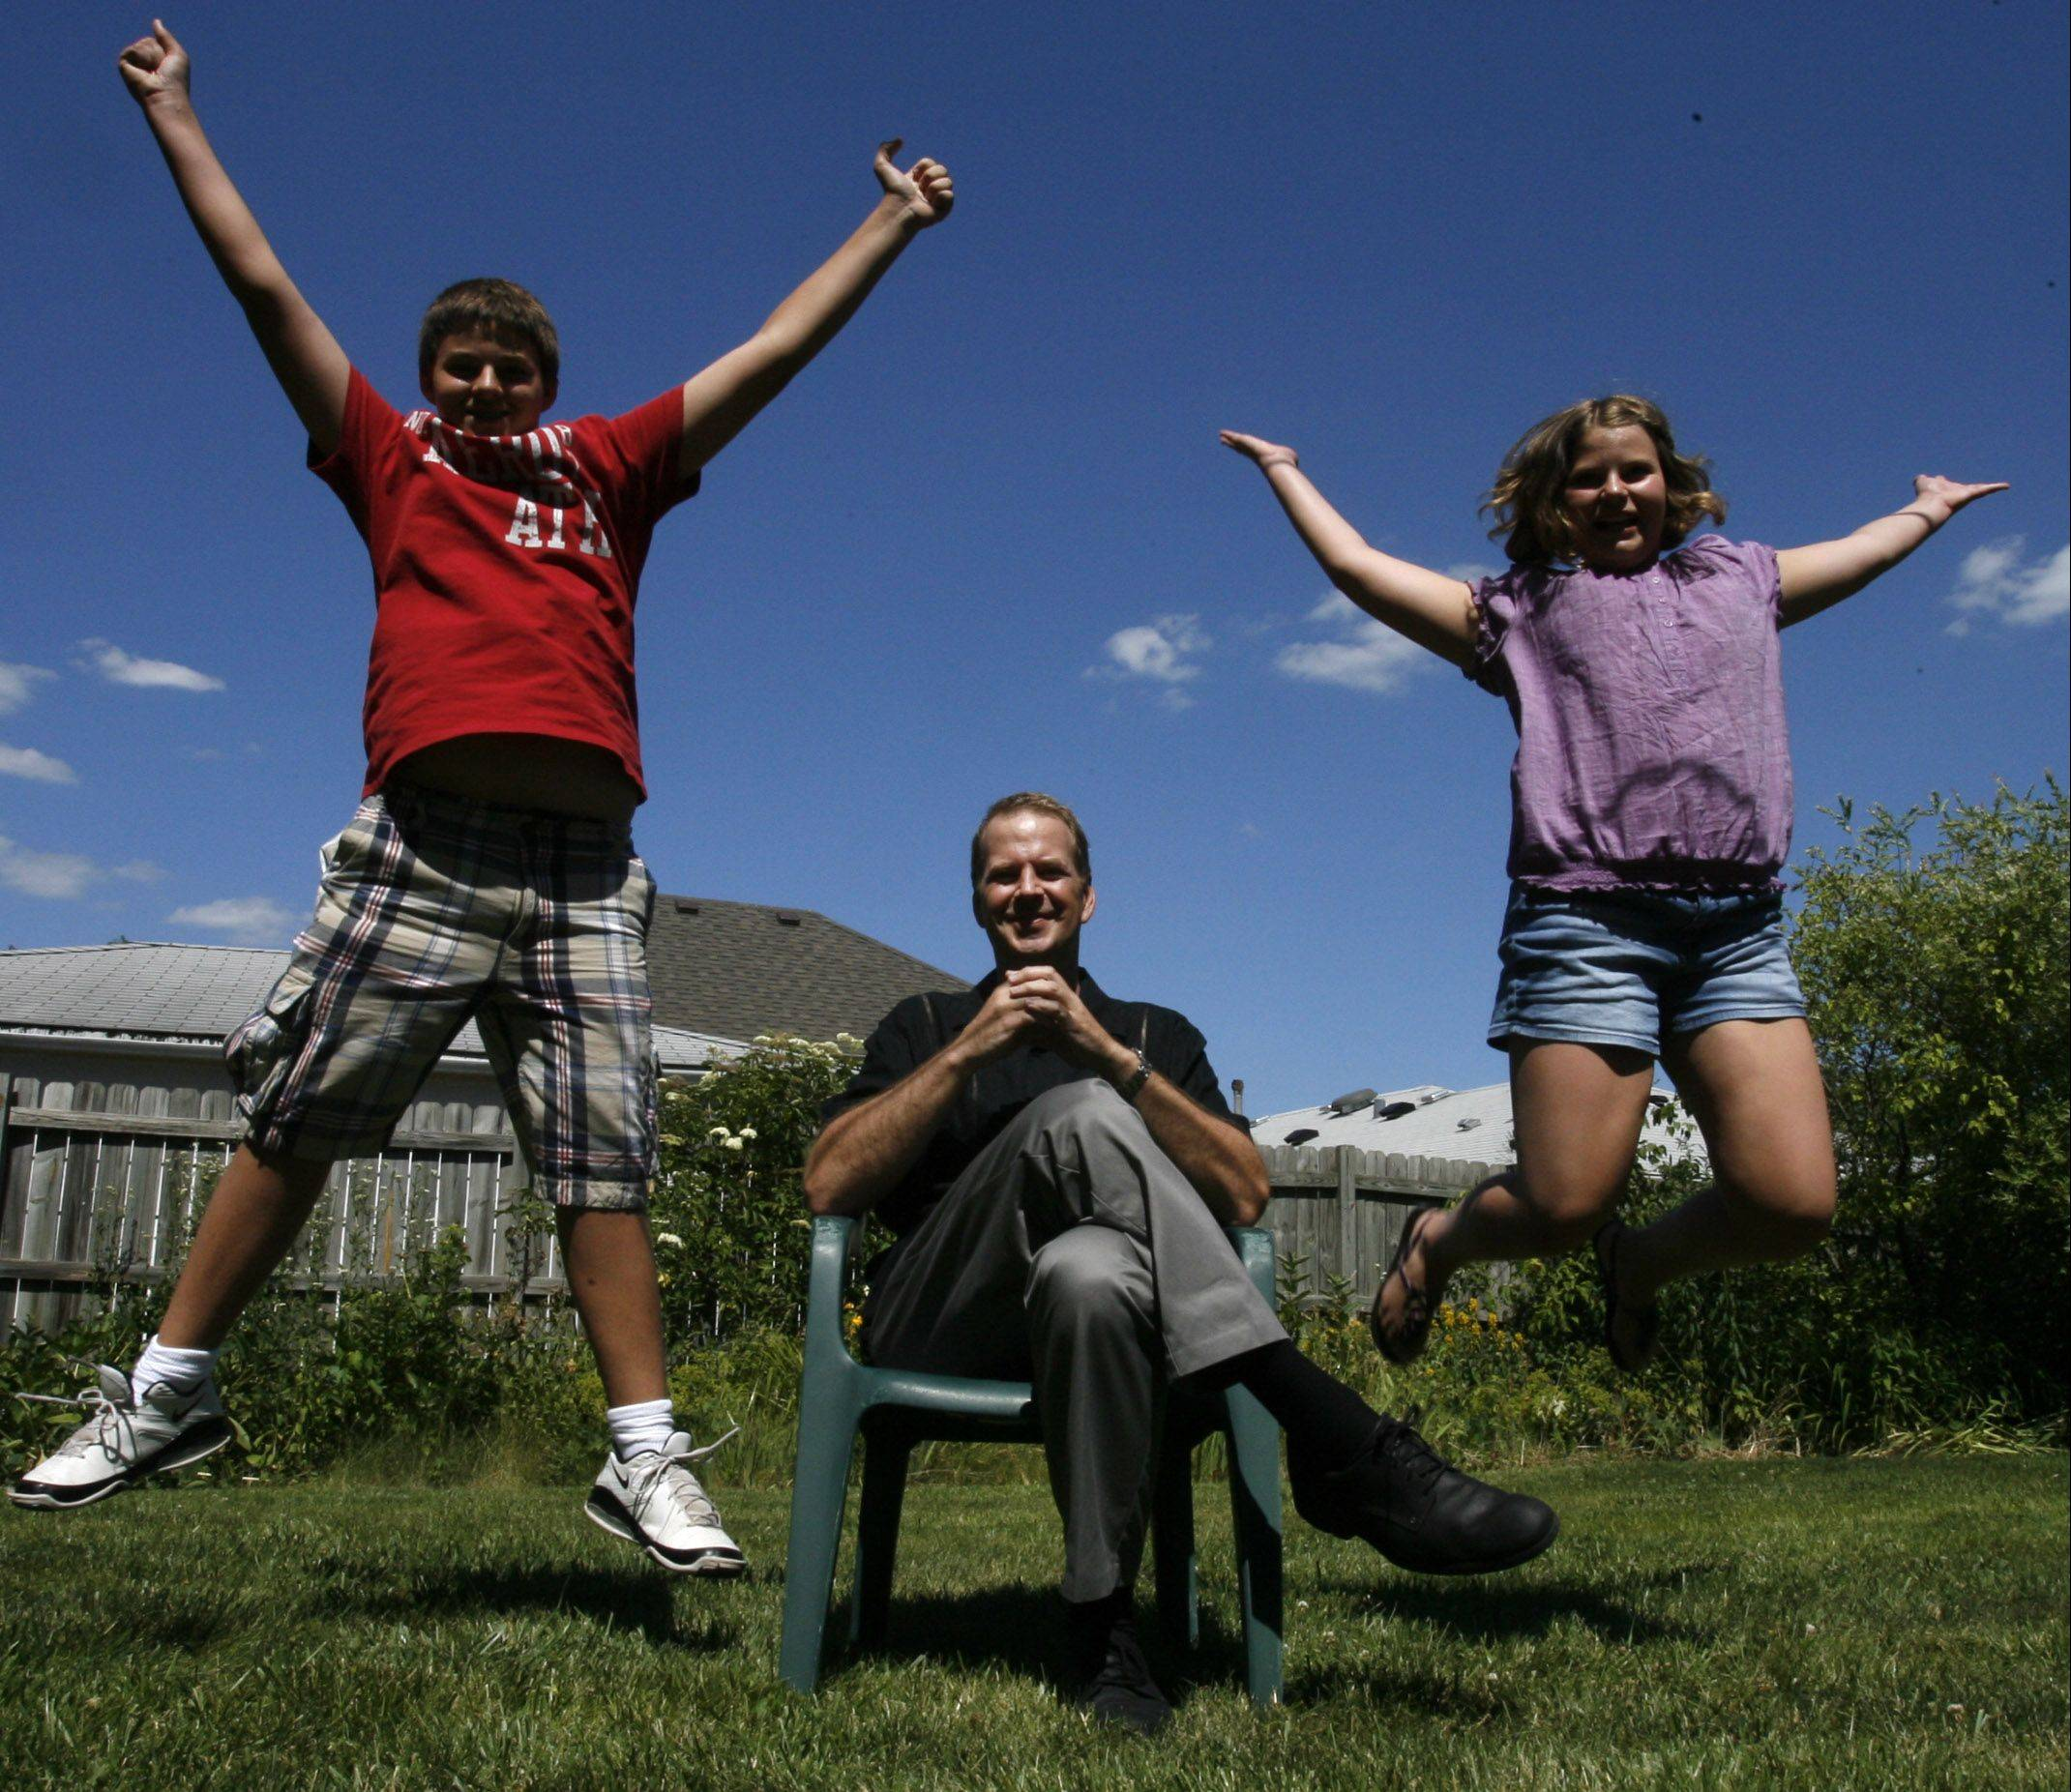 Ray Summins with son, Sam, 13, and daughter Alison, 10, at their home in Hoffman Estates last week.